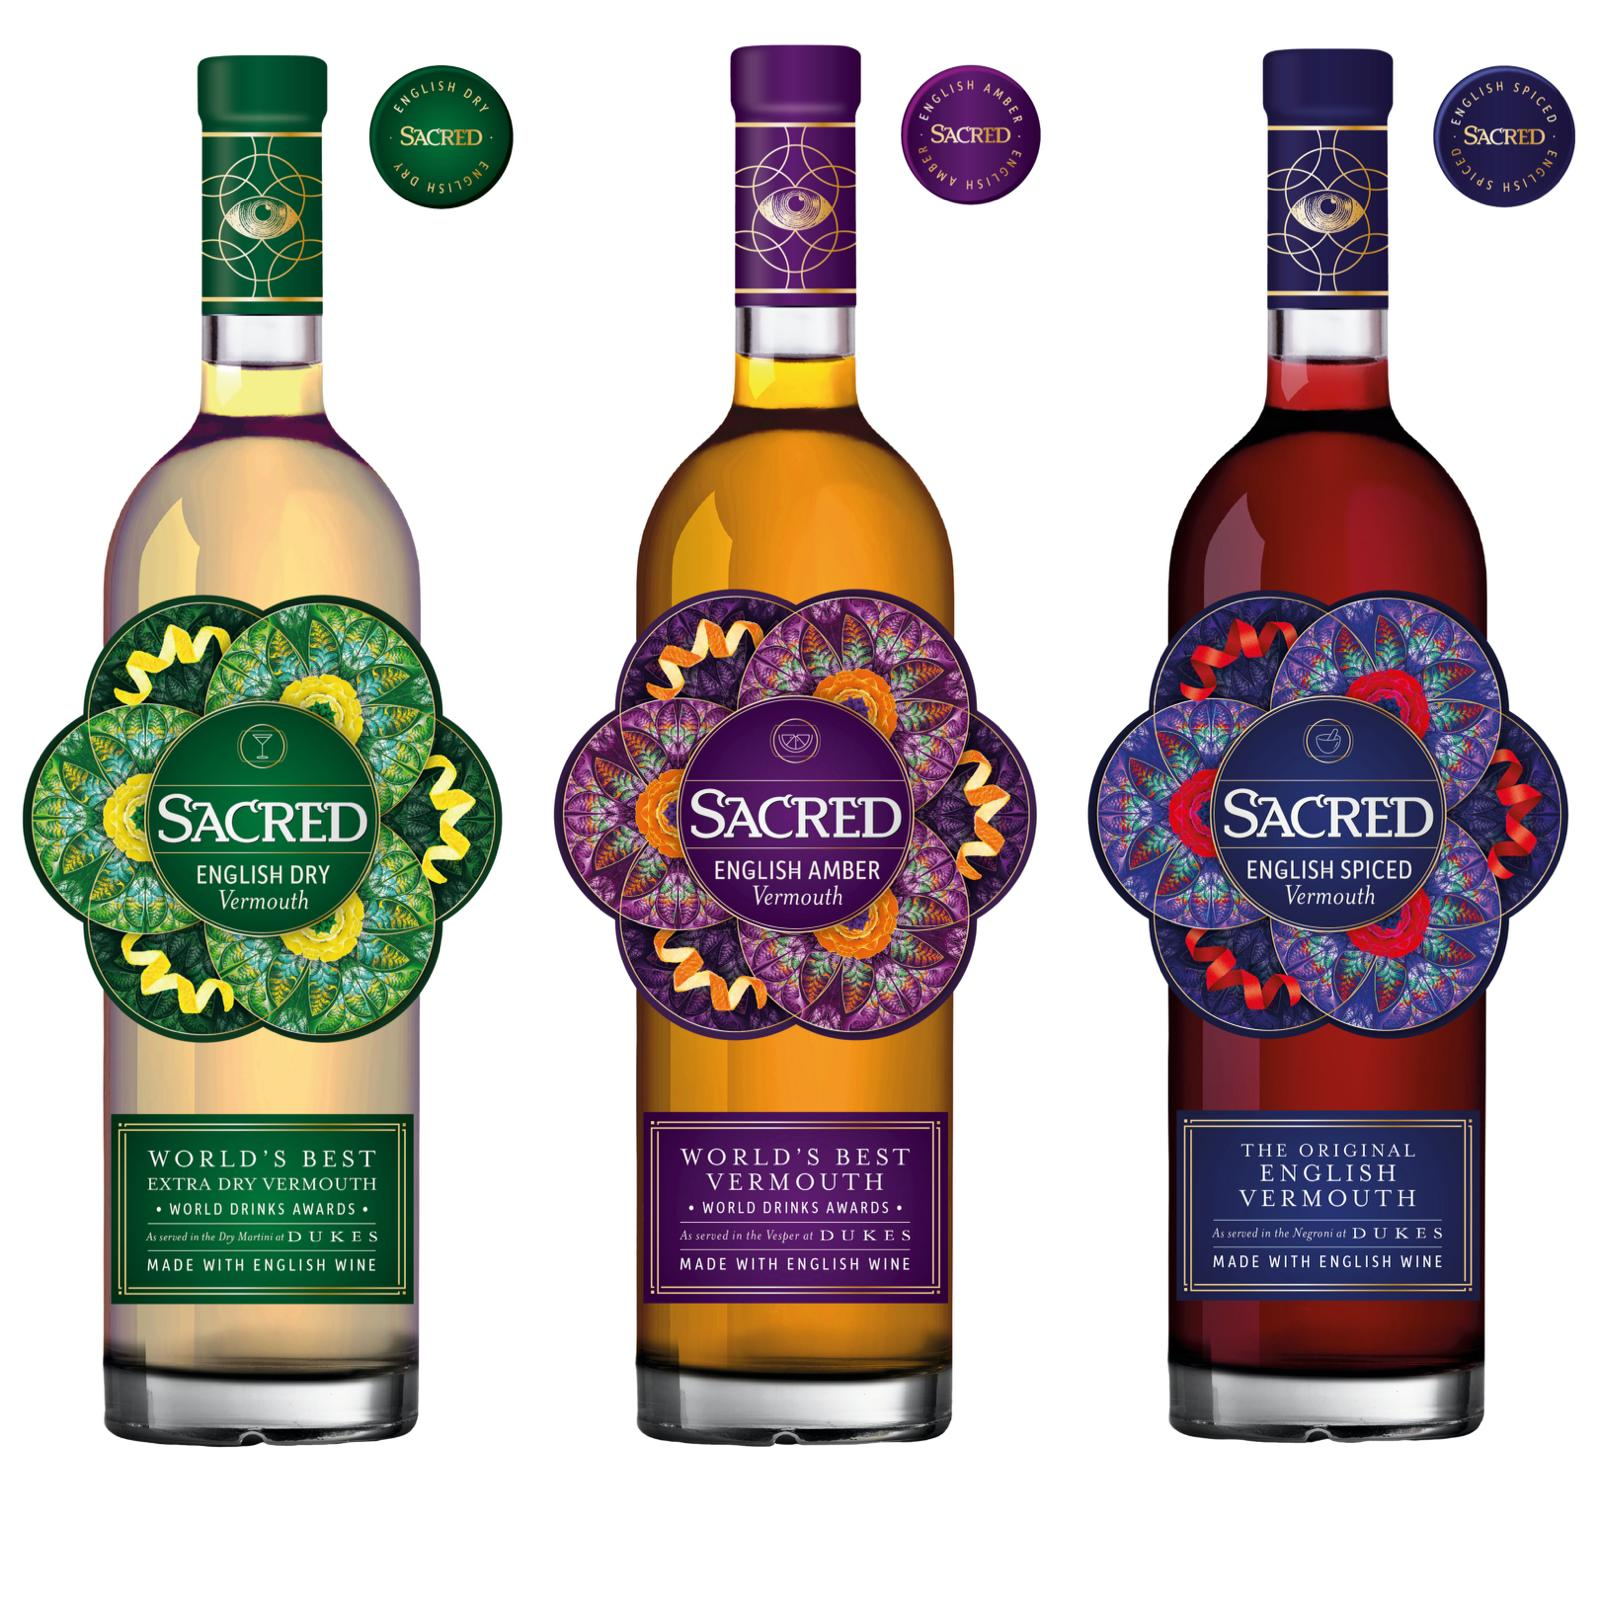 Sacred Vermouth: Relaunching Soon